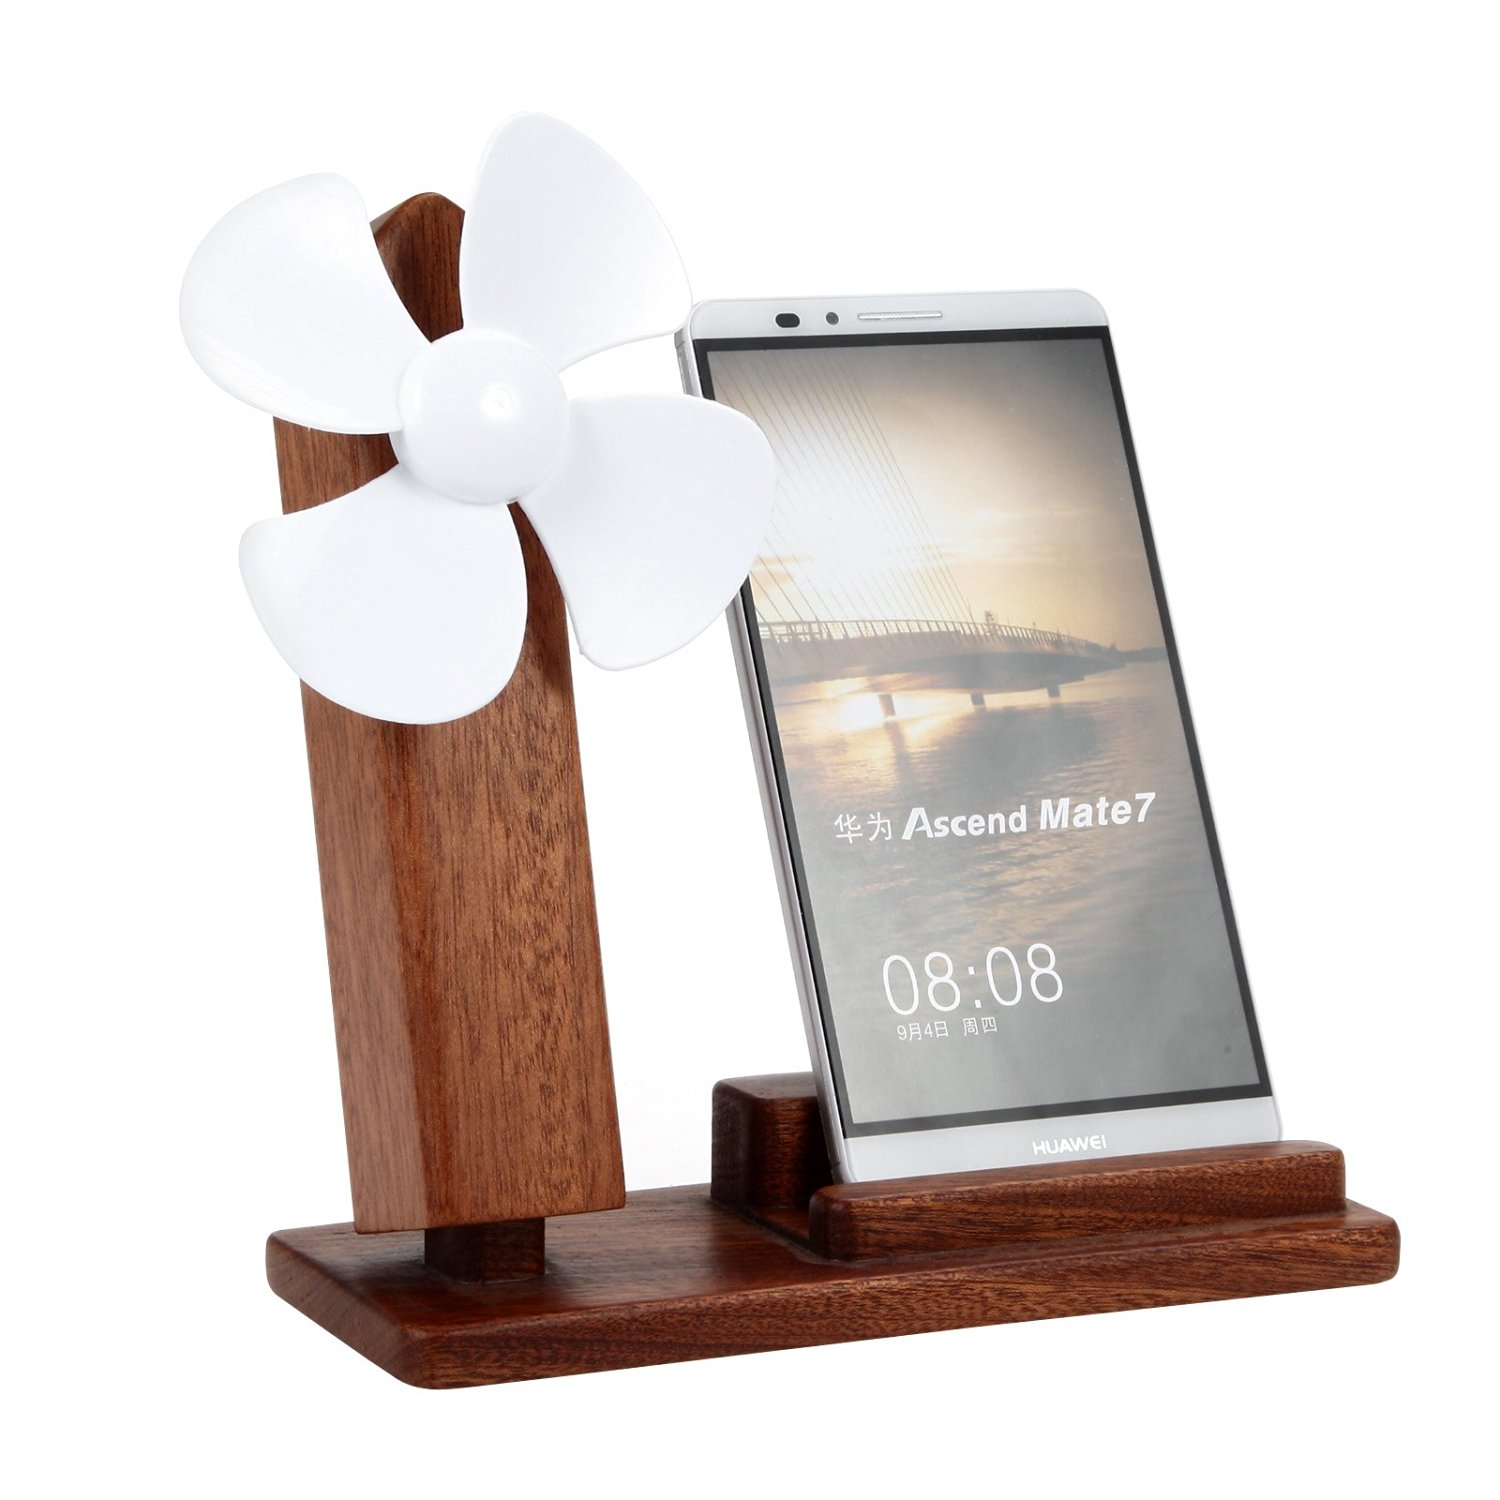 Wood Phone Stand USB Fan, Beeiee Universal Wood Phone Stand Holder with USB Fan,Adjustable Wind Direction for iPhone,Samsung Galaxy,and other Android Mobiles (Dark Brown)